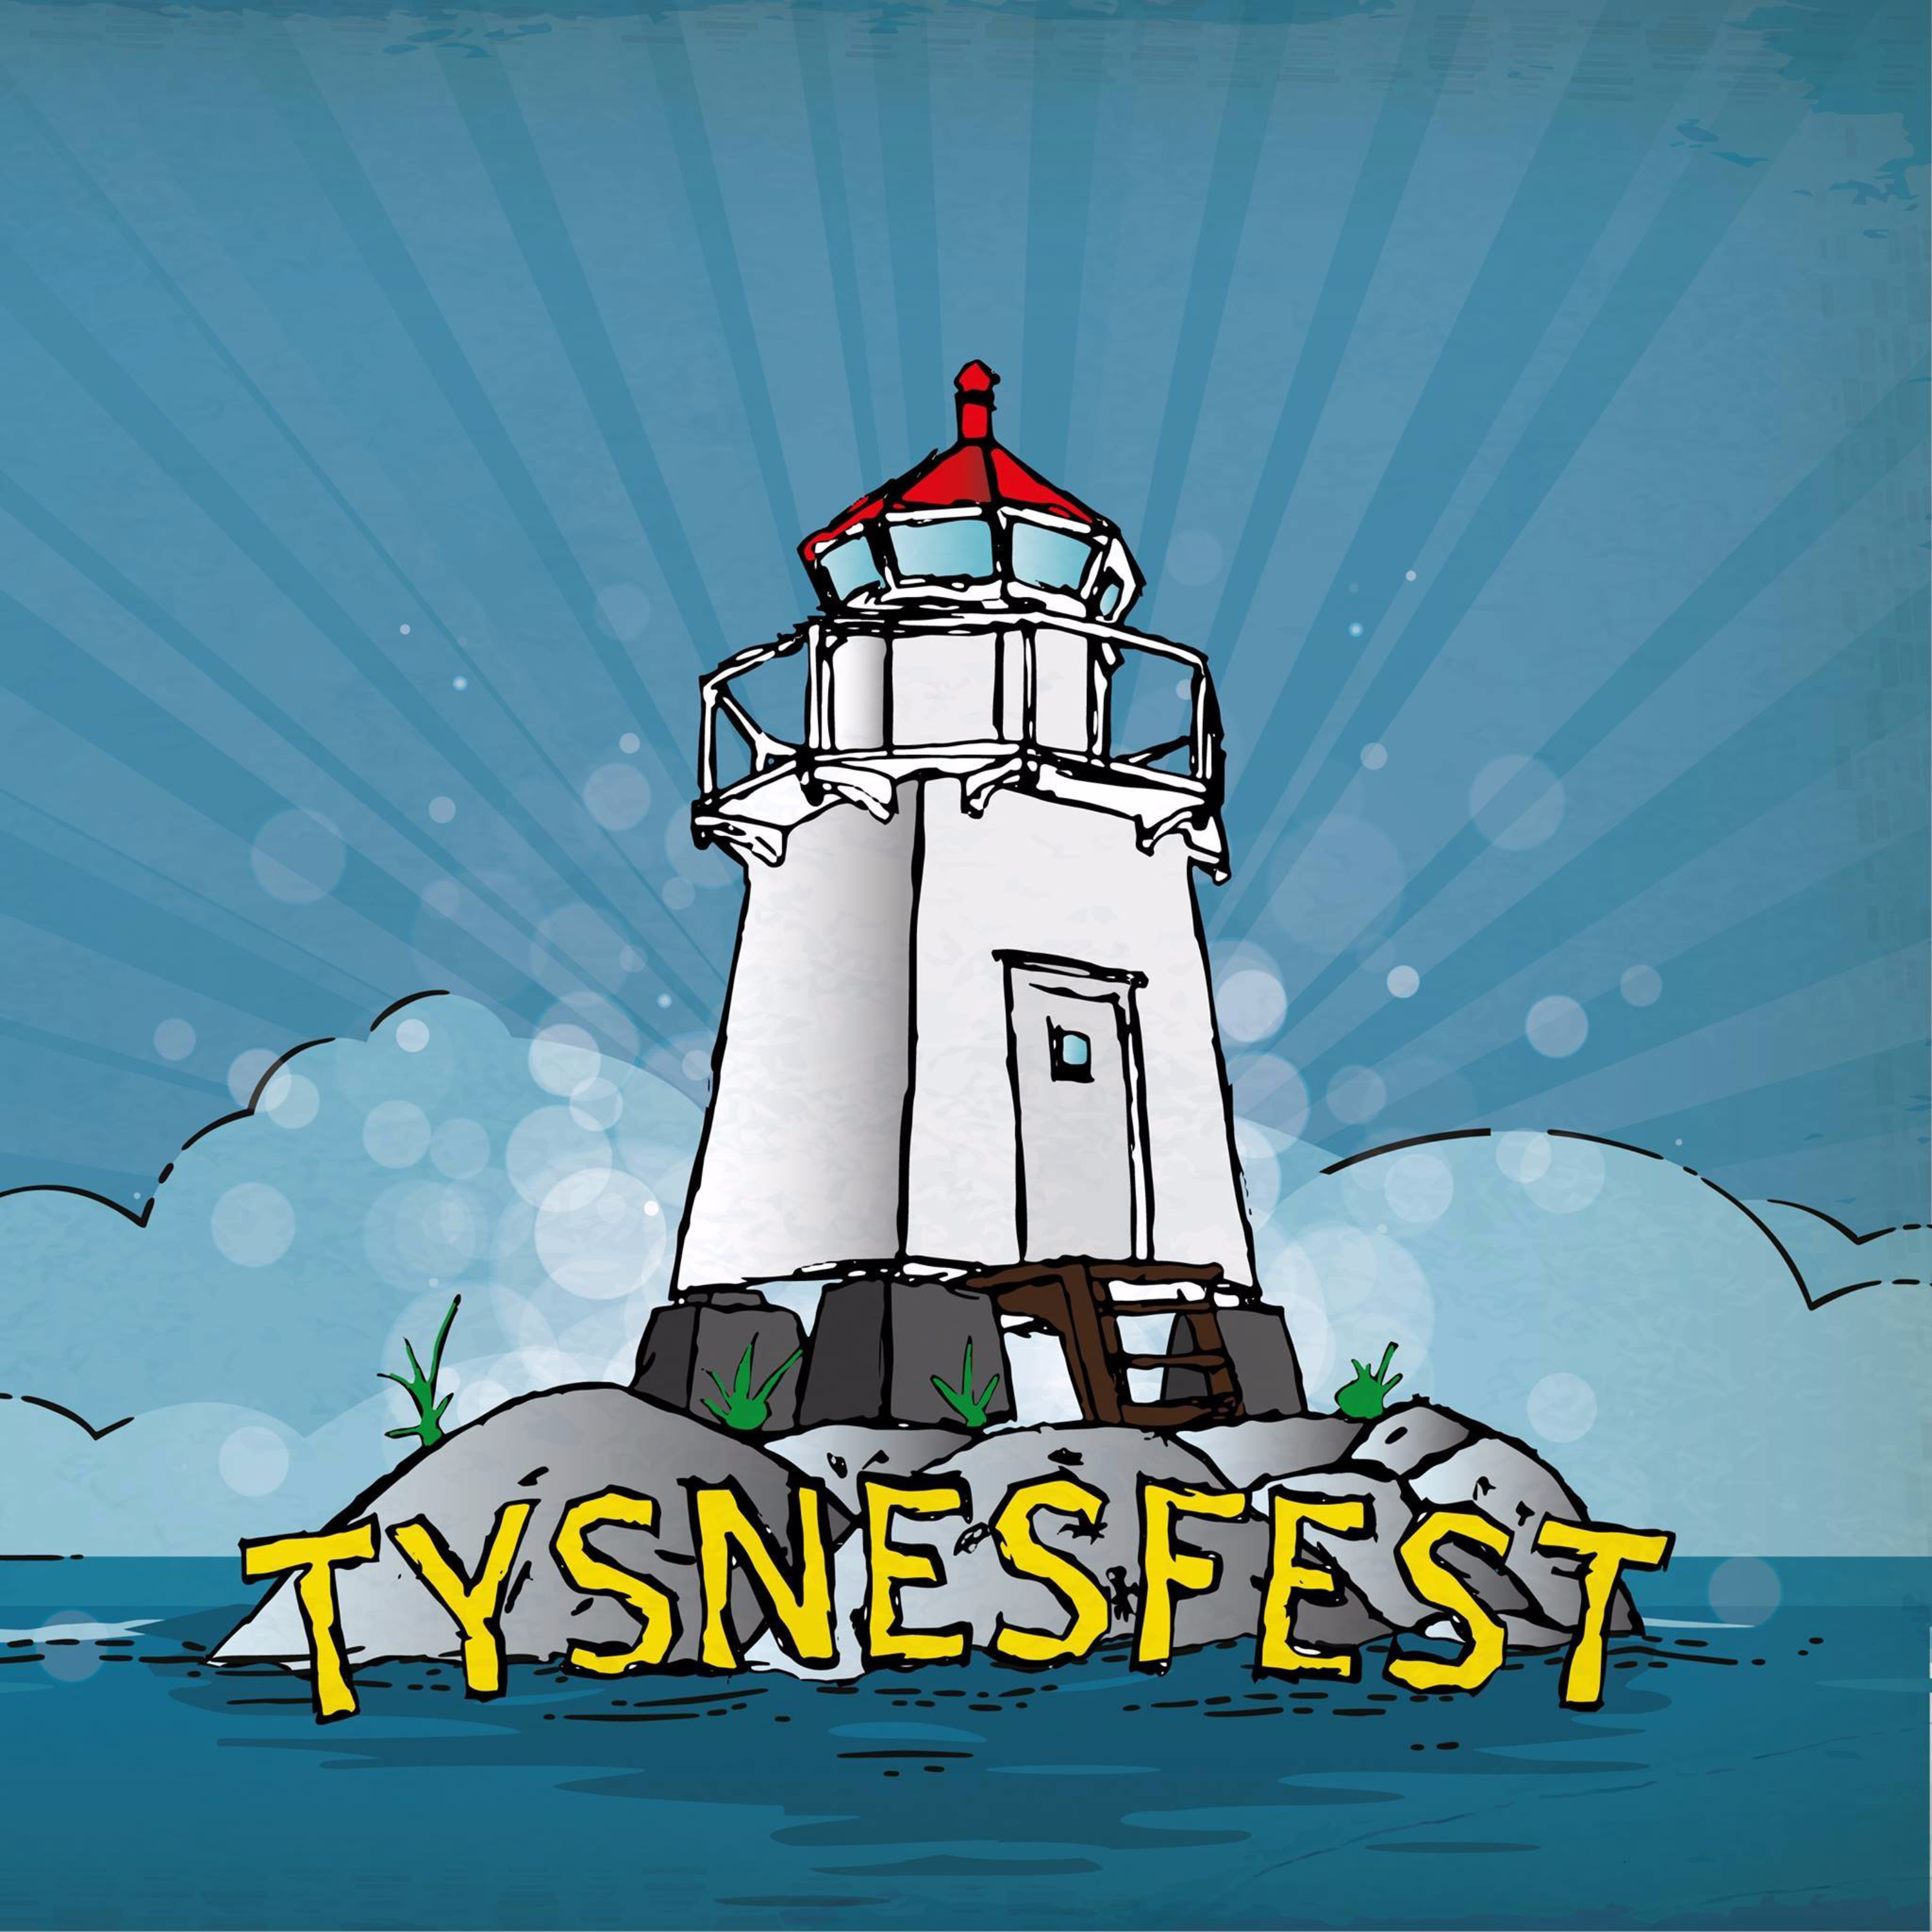 Counting down to Tysnesfest 2019